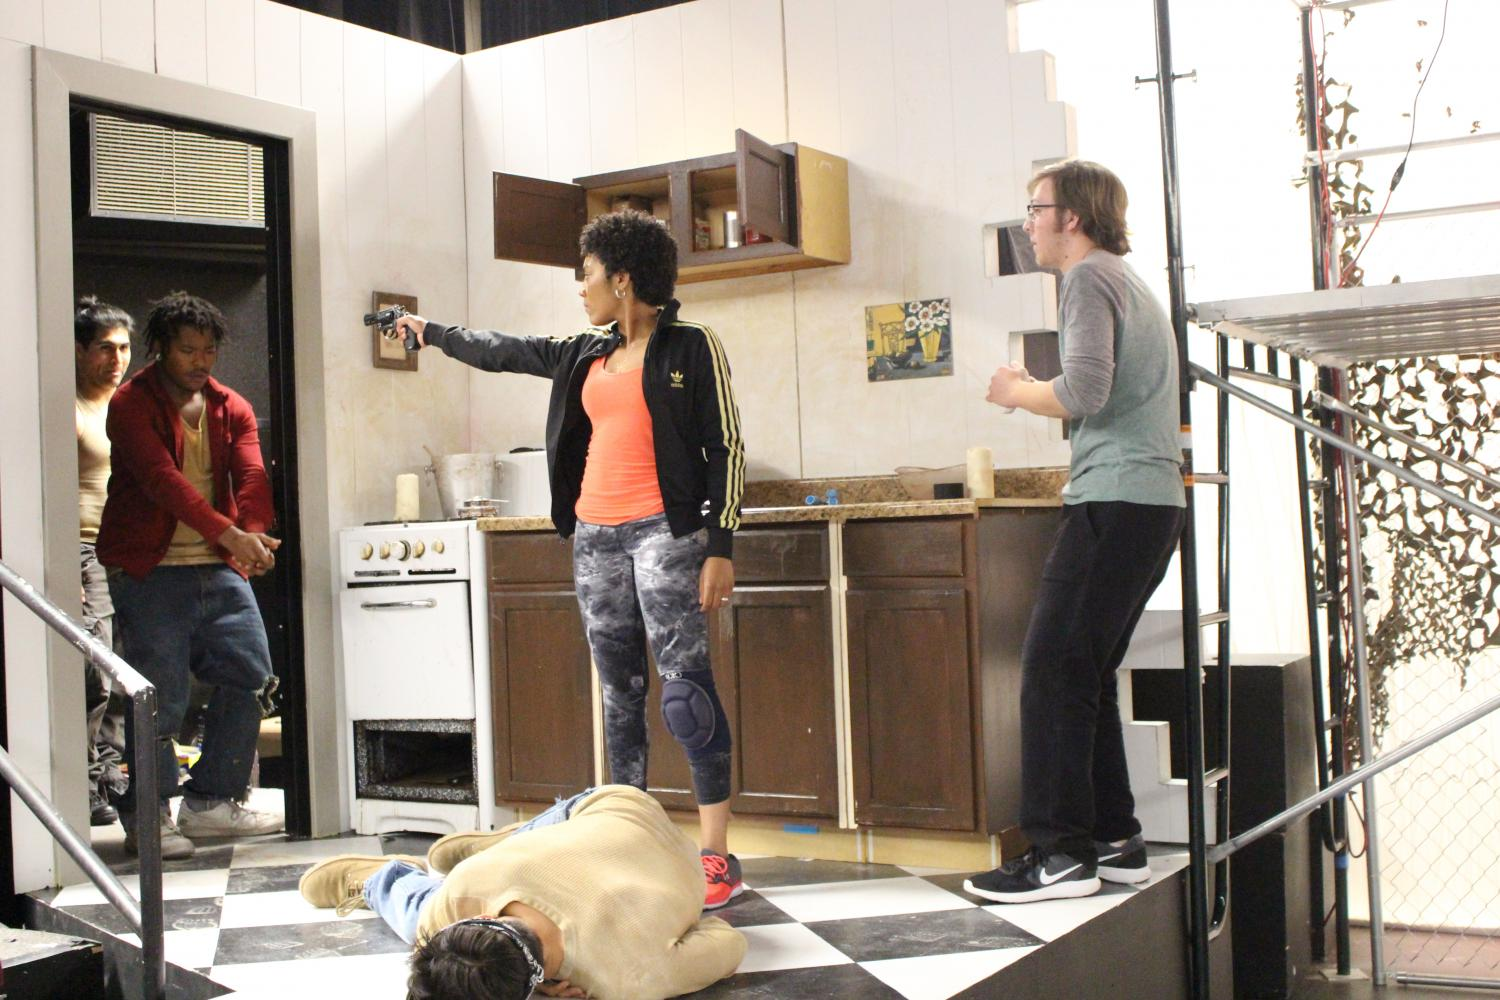 Drama cast eats brains for play